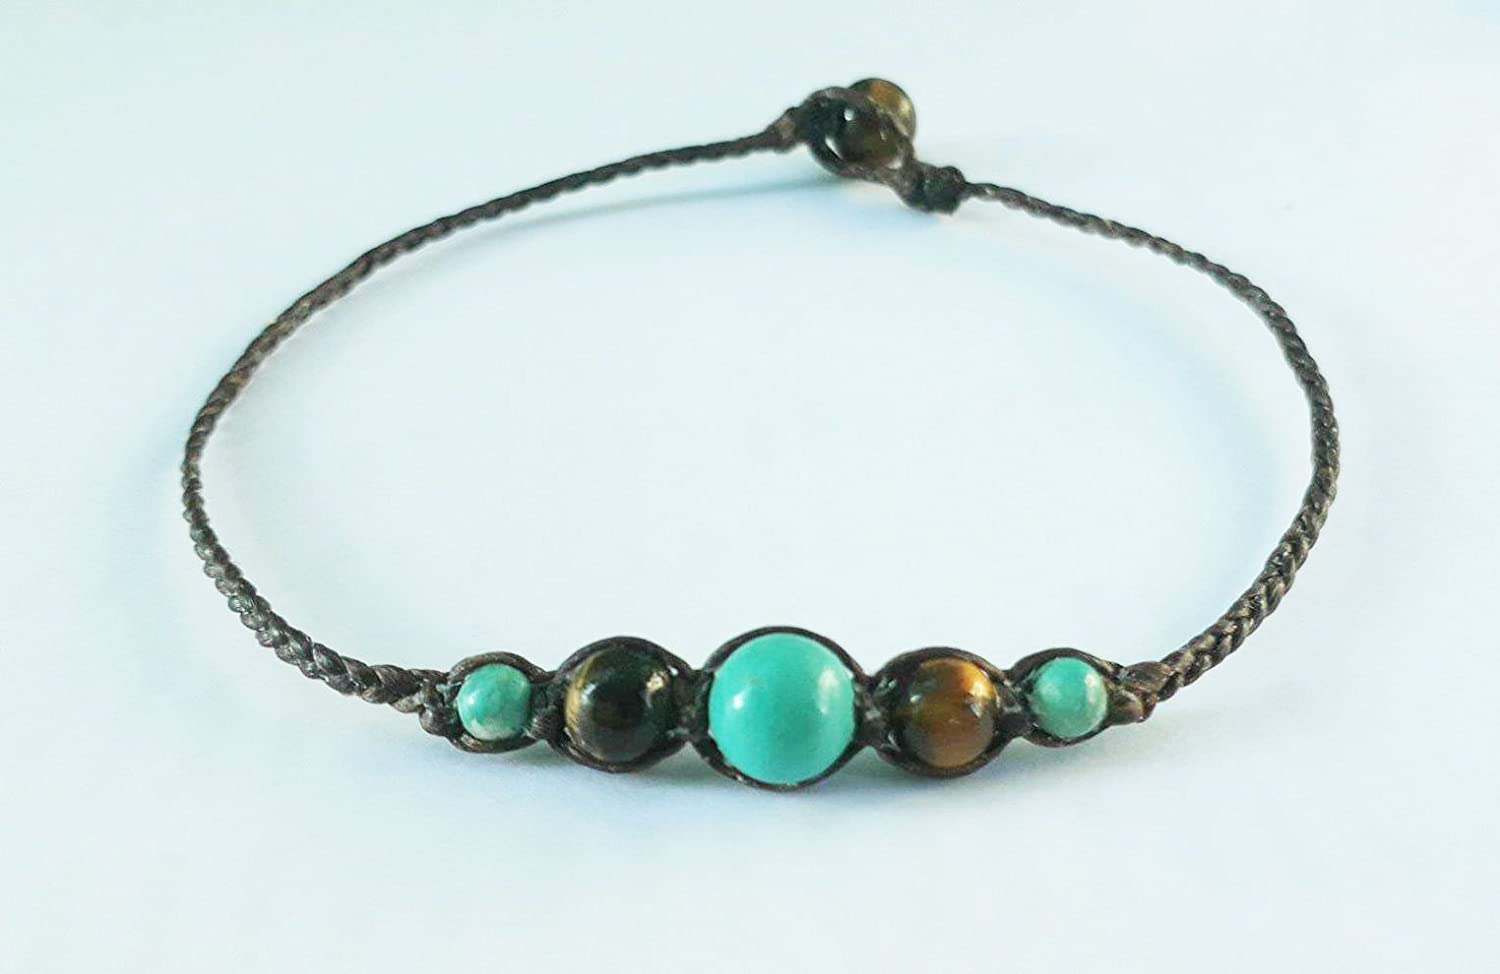 Turquoise anklets, tiger eye anklets, stone anklets, men anklets, women anklets, fashion anklets